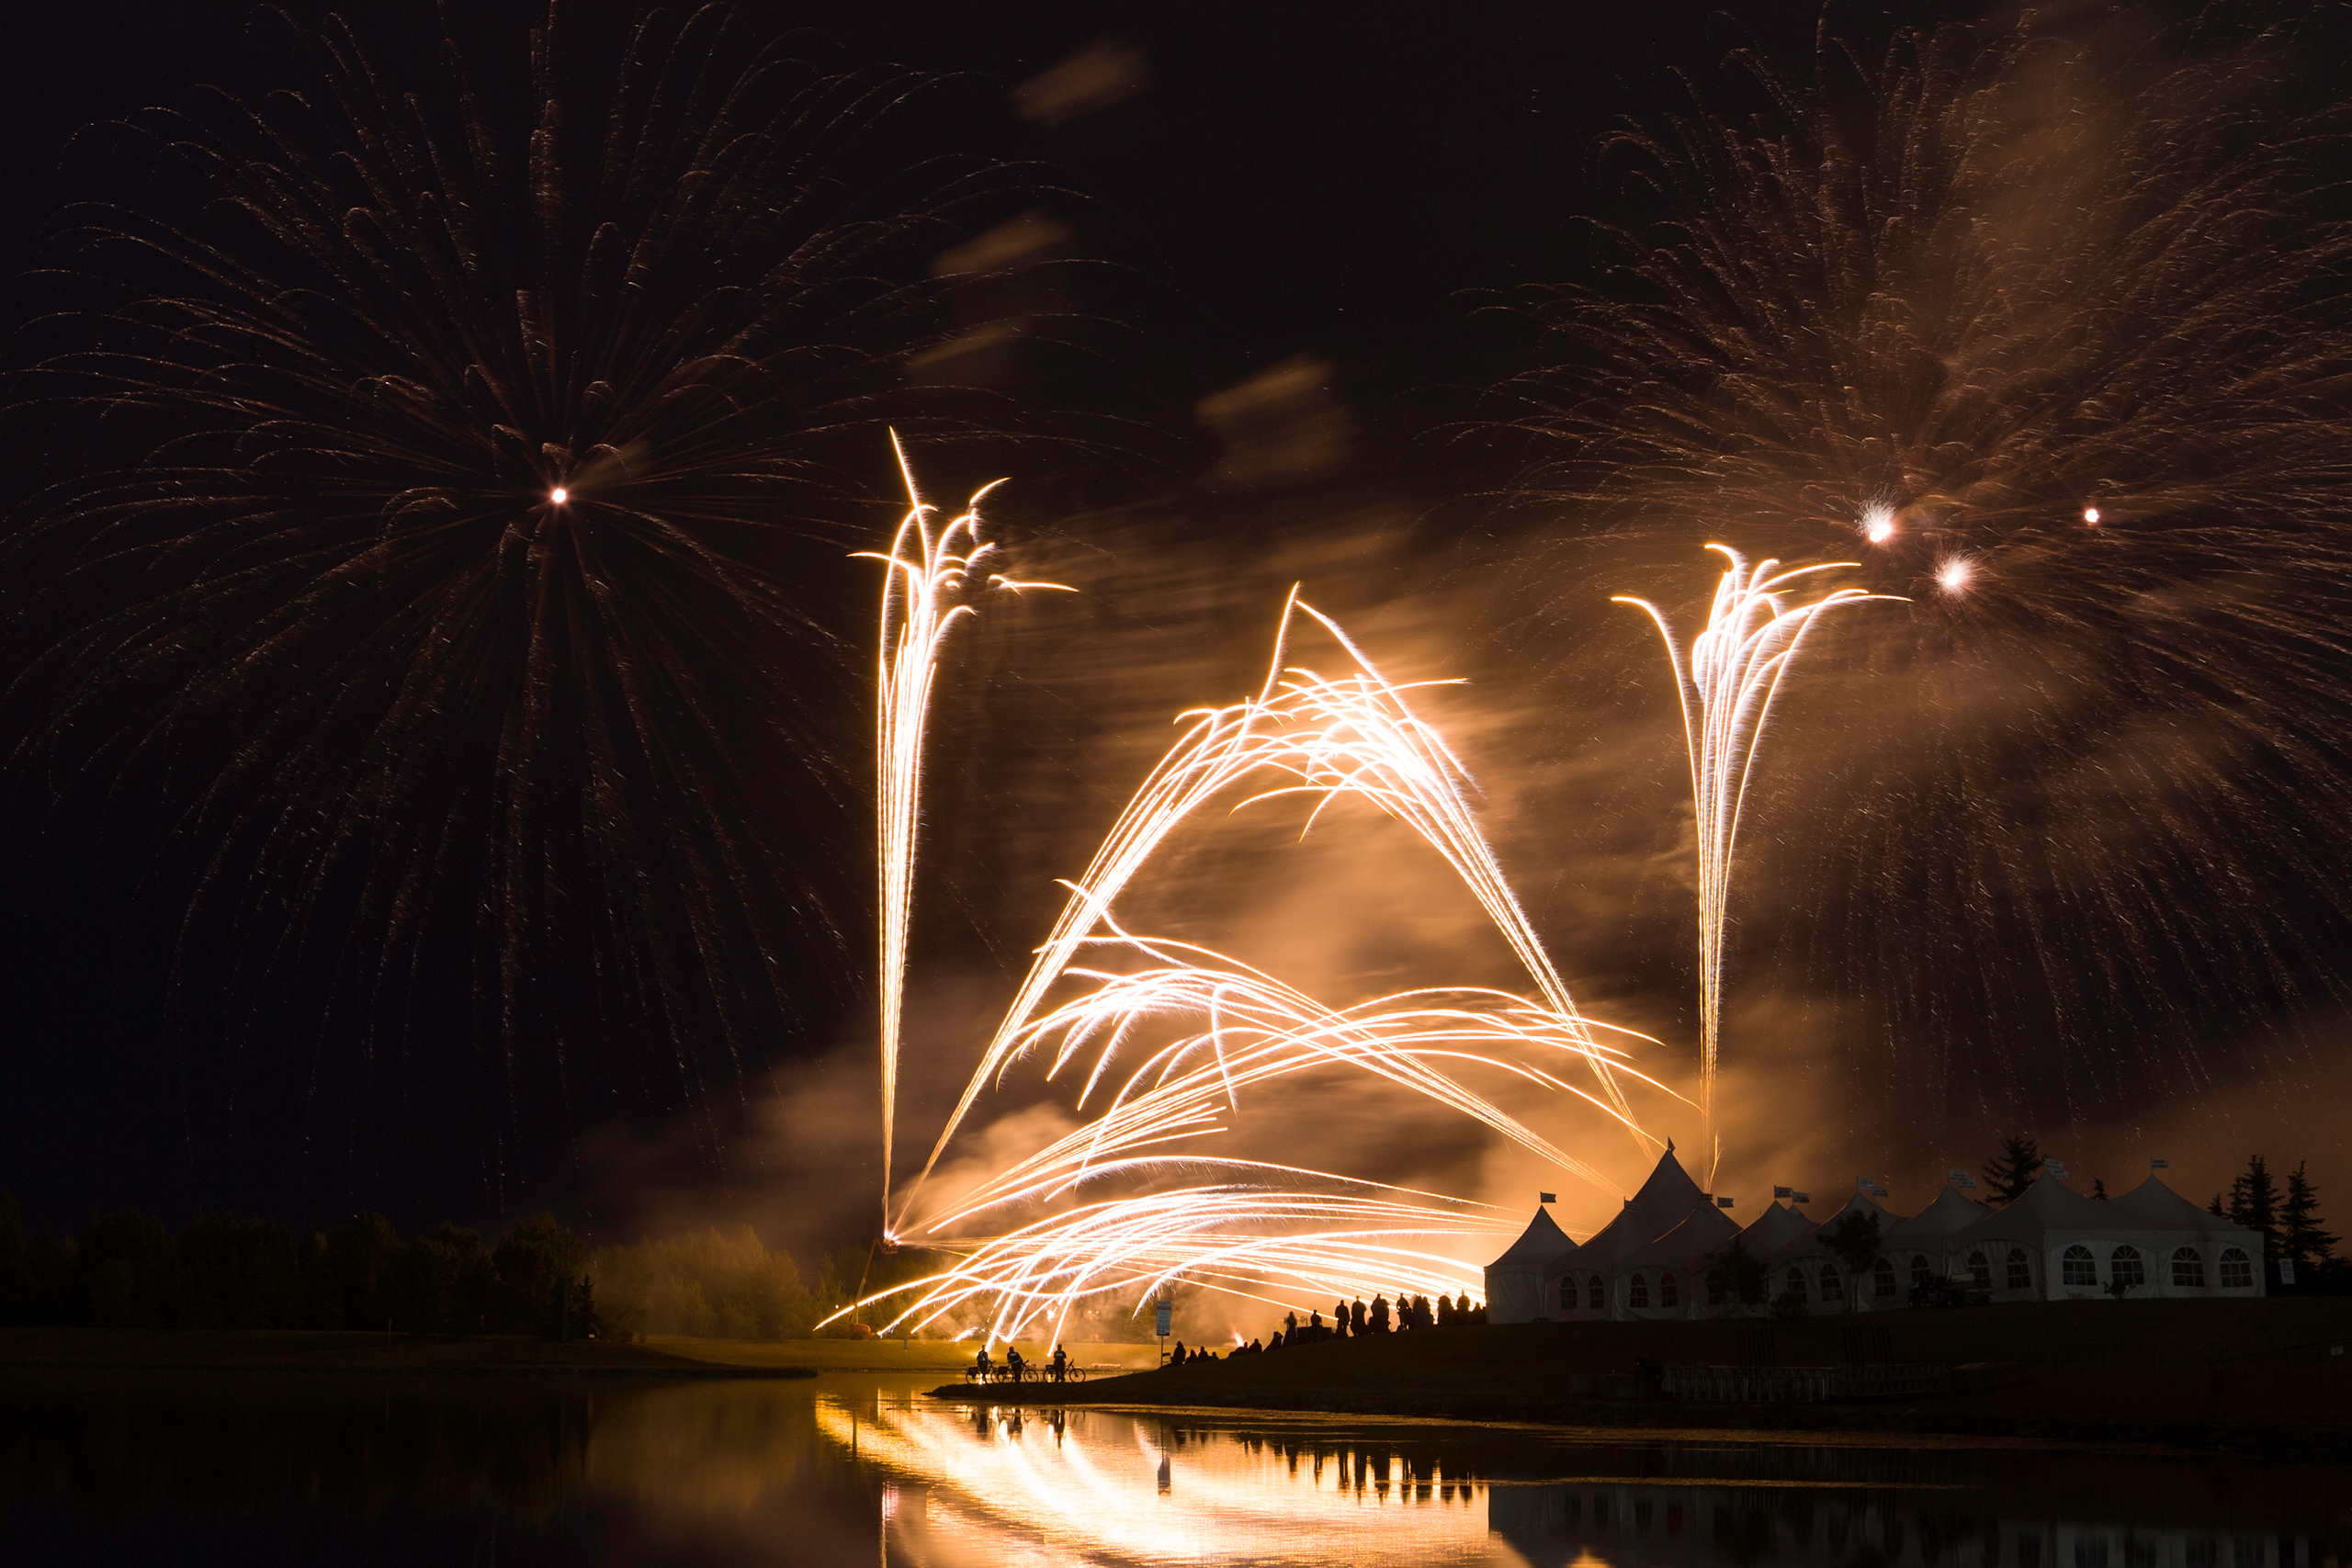 2014-08-21-3-GlobalFest-fireworks-at-Elliston-Park.jpg